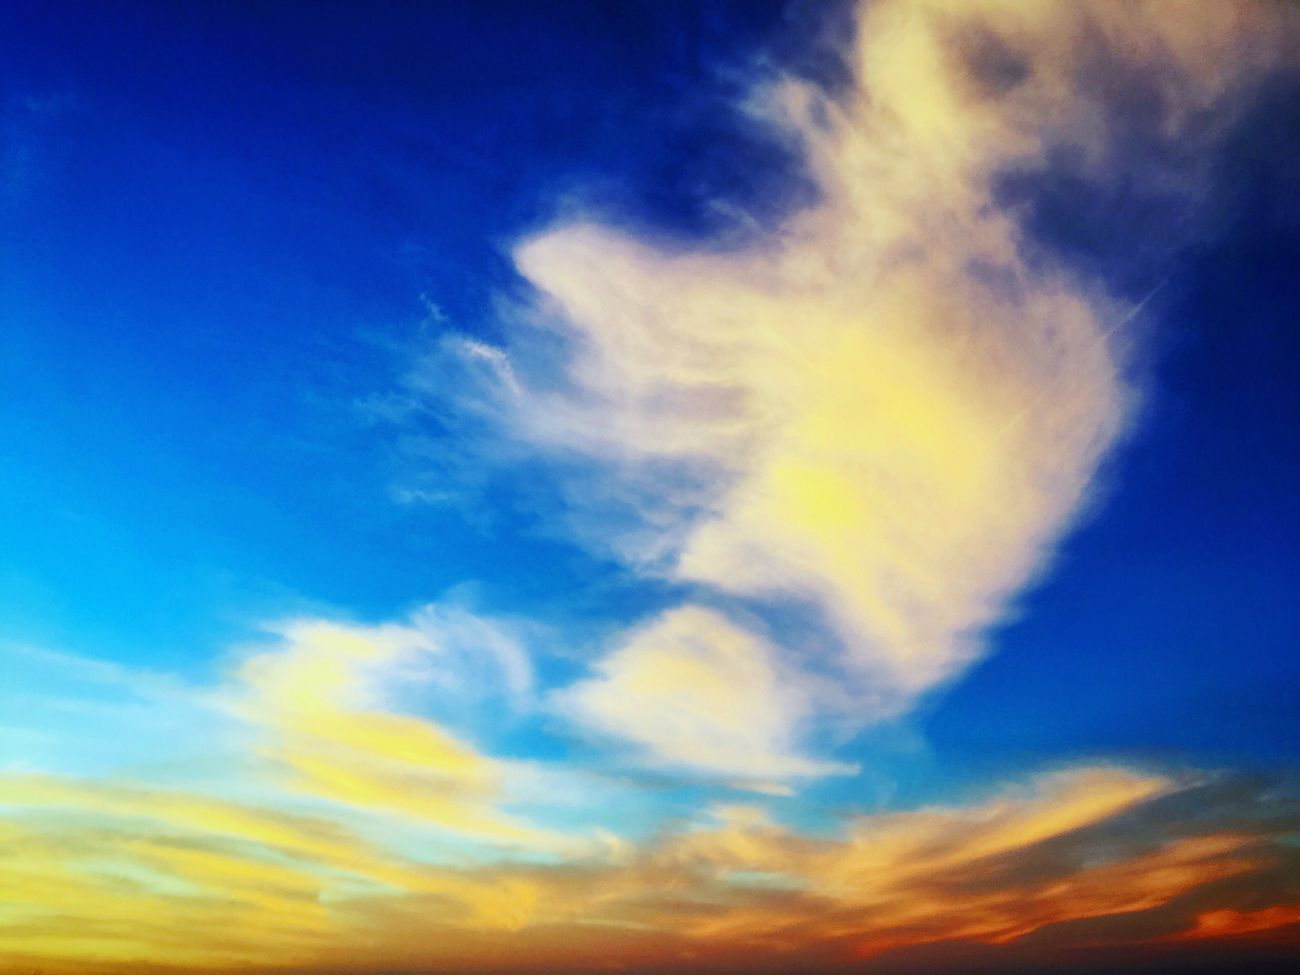 Cool clouds Sky Blue Nature Low Angle View Cloud - Sky Beauty In Nature No People Scenics Tranquility Backgrounds Tranquil Scene Outdoors Day